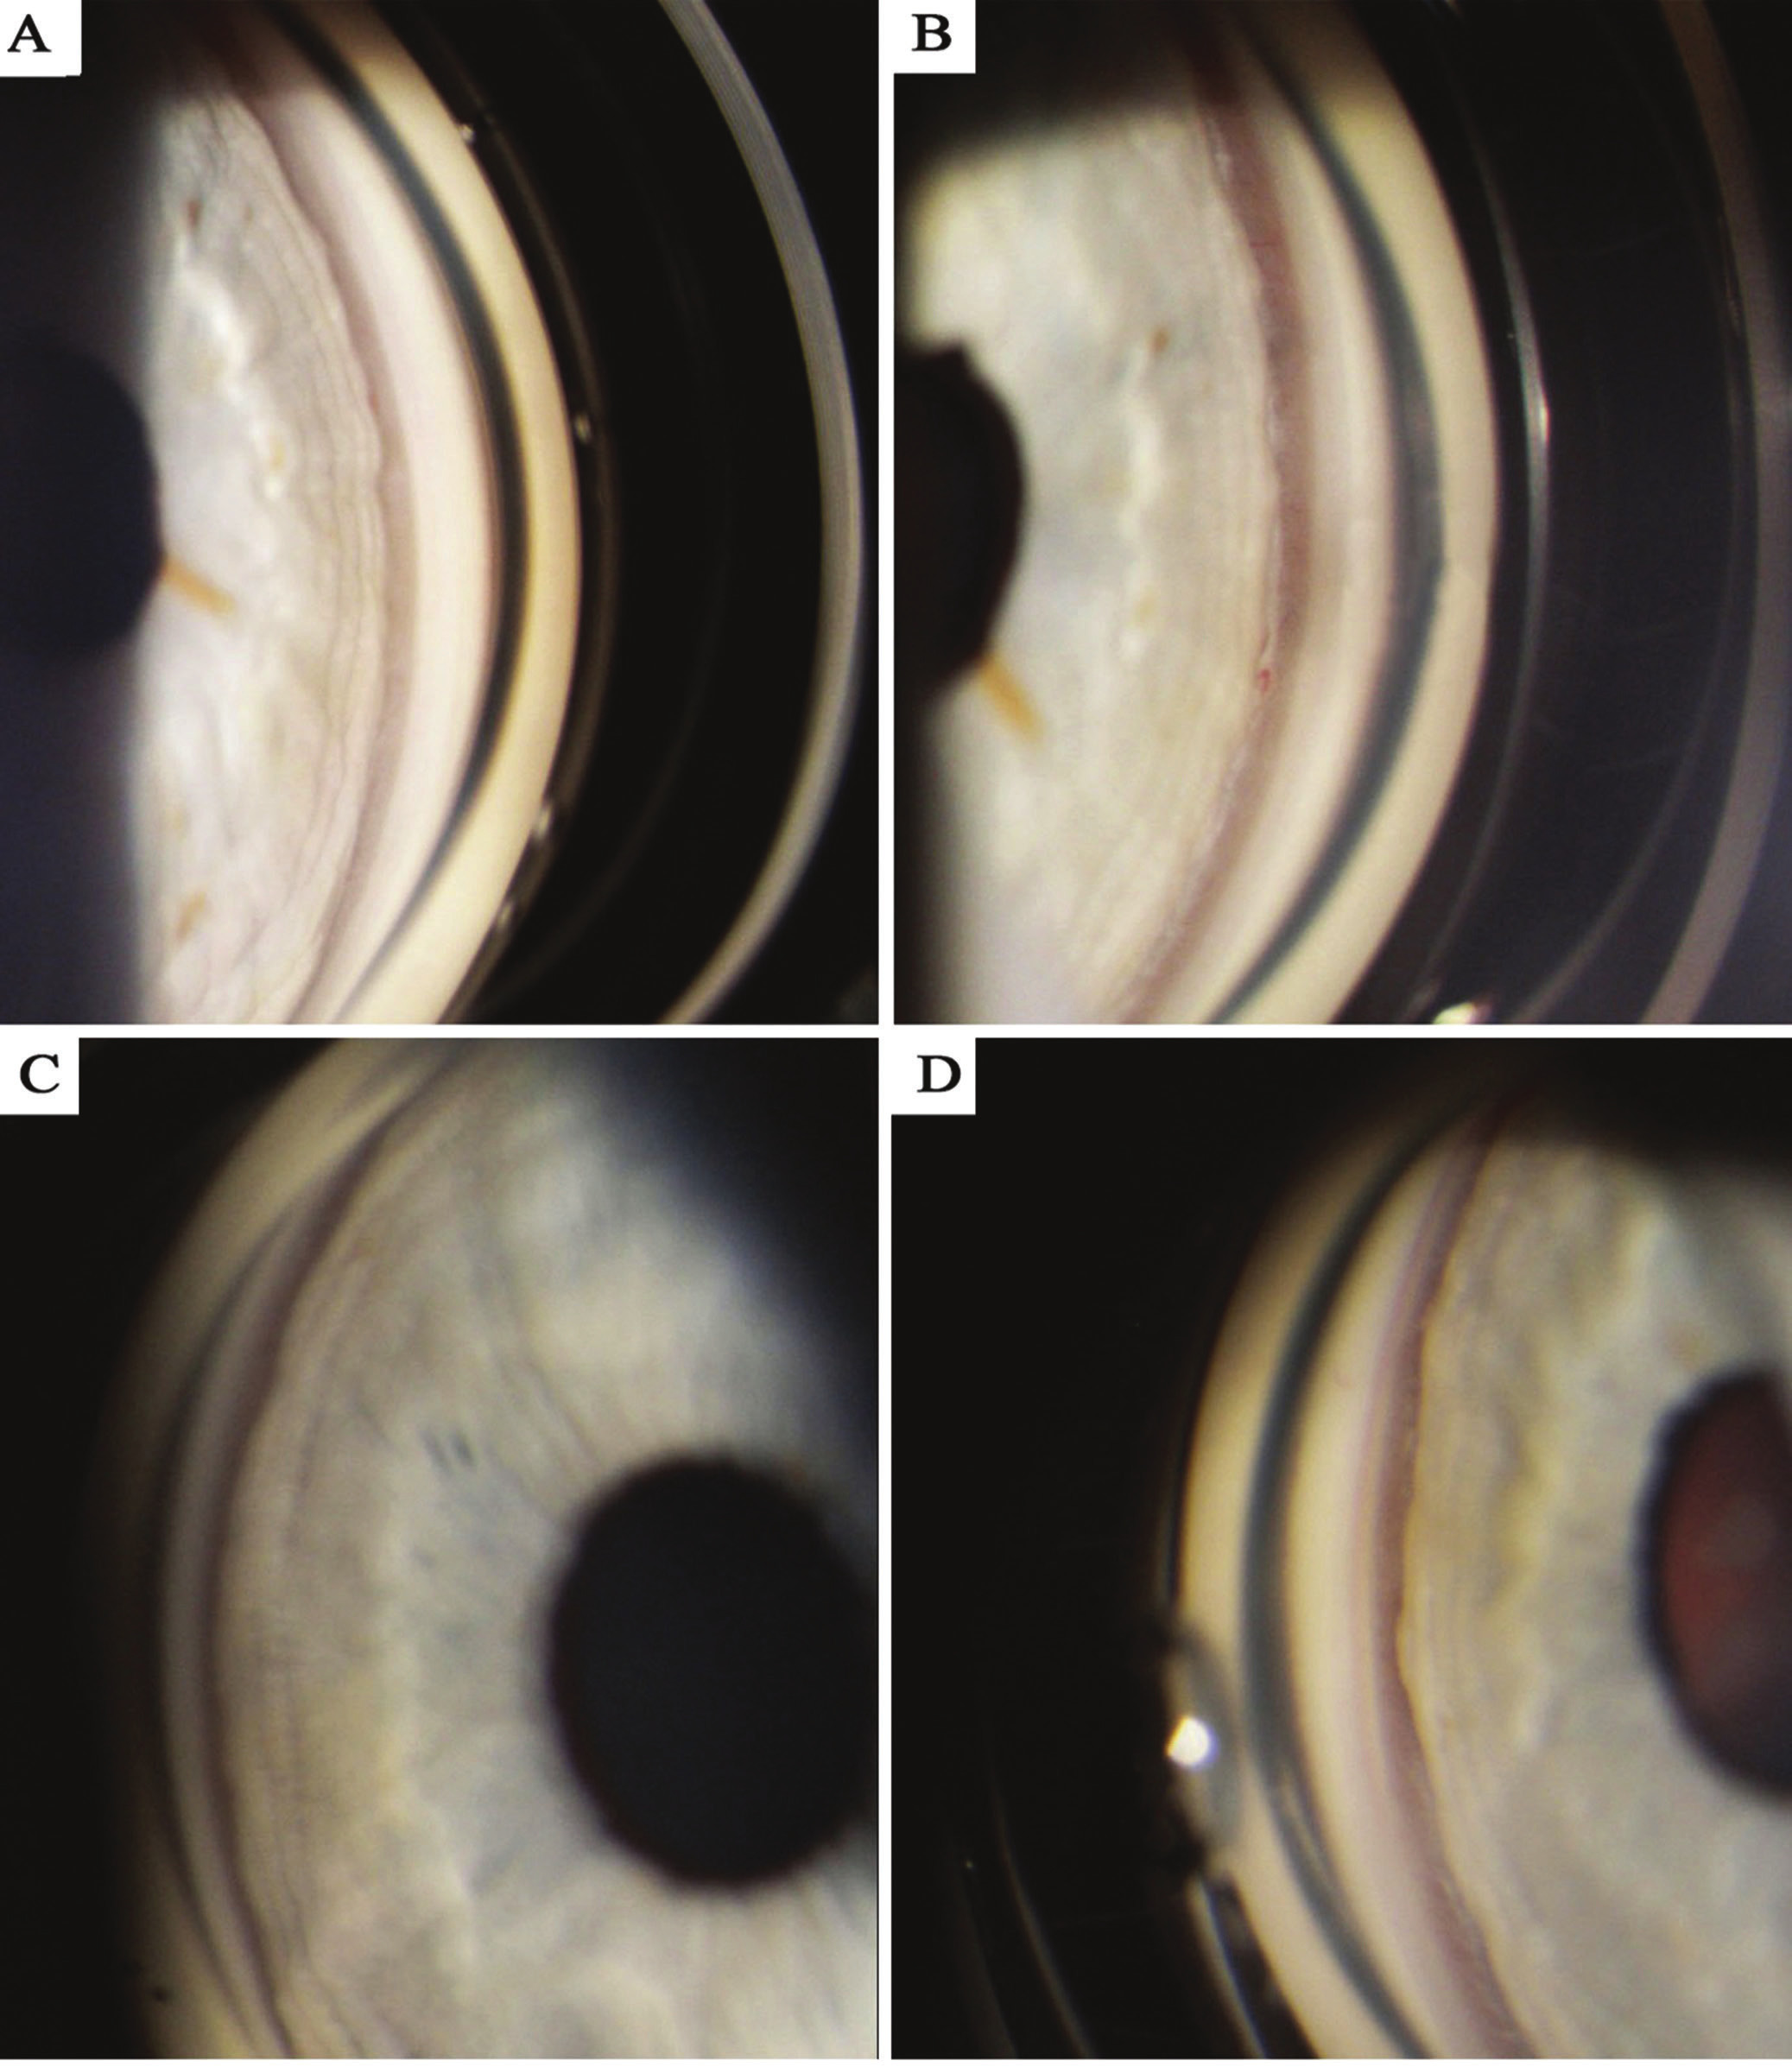 Gonioscophy photograph – documentation of configuration of chamber angle, A) right eye before discontinuation of trazodone, B) right eye after discontinuation of trazodone, C) left eye before discontinuation of trazodone, D) left eye after discontinuation of trazodone.